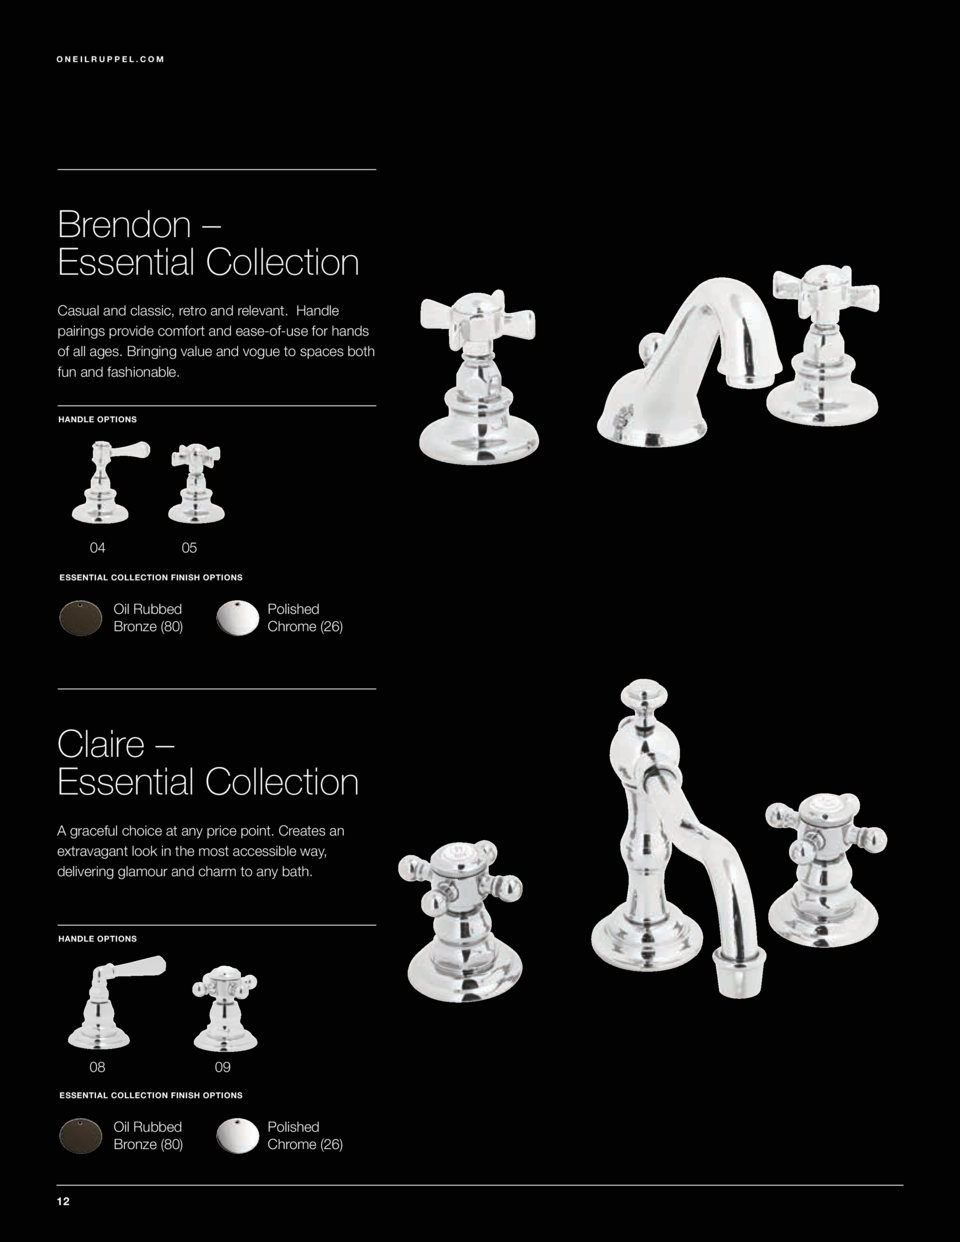 1.855.395.9677  ONEILRUPPEL.COM  Brendon     Essential Collection Casual and classic, retro and relevant. Handle pairings ...